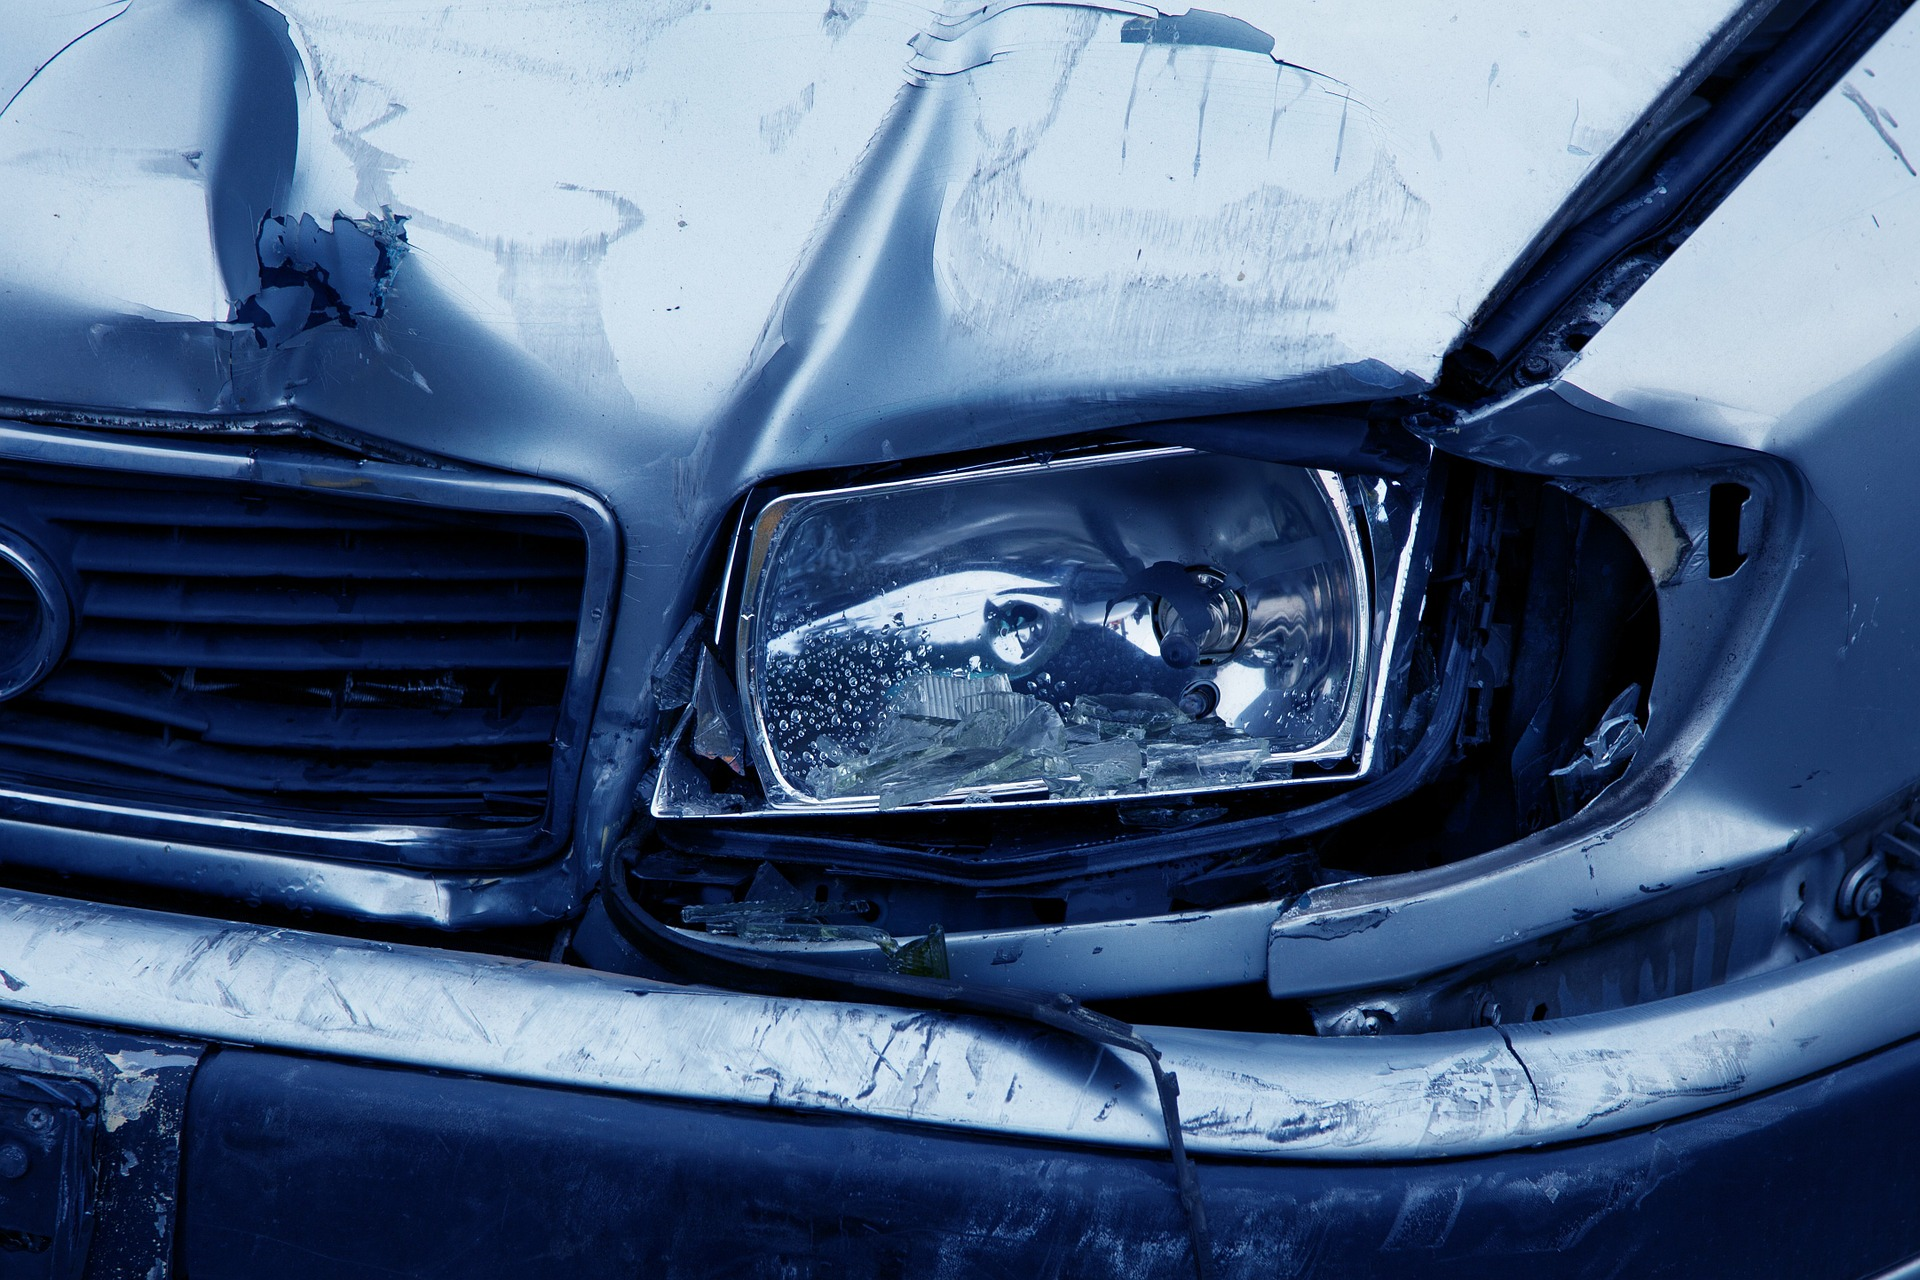 Had A Car Accident? Here are Some Tips